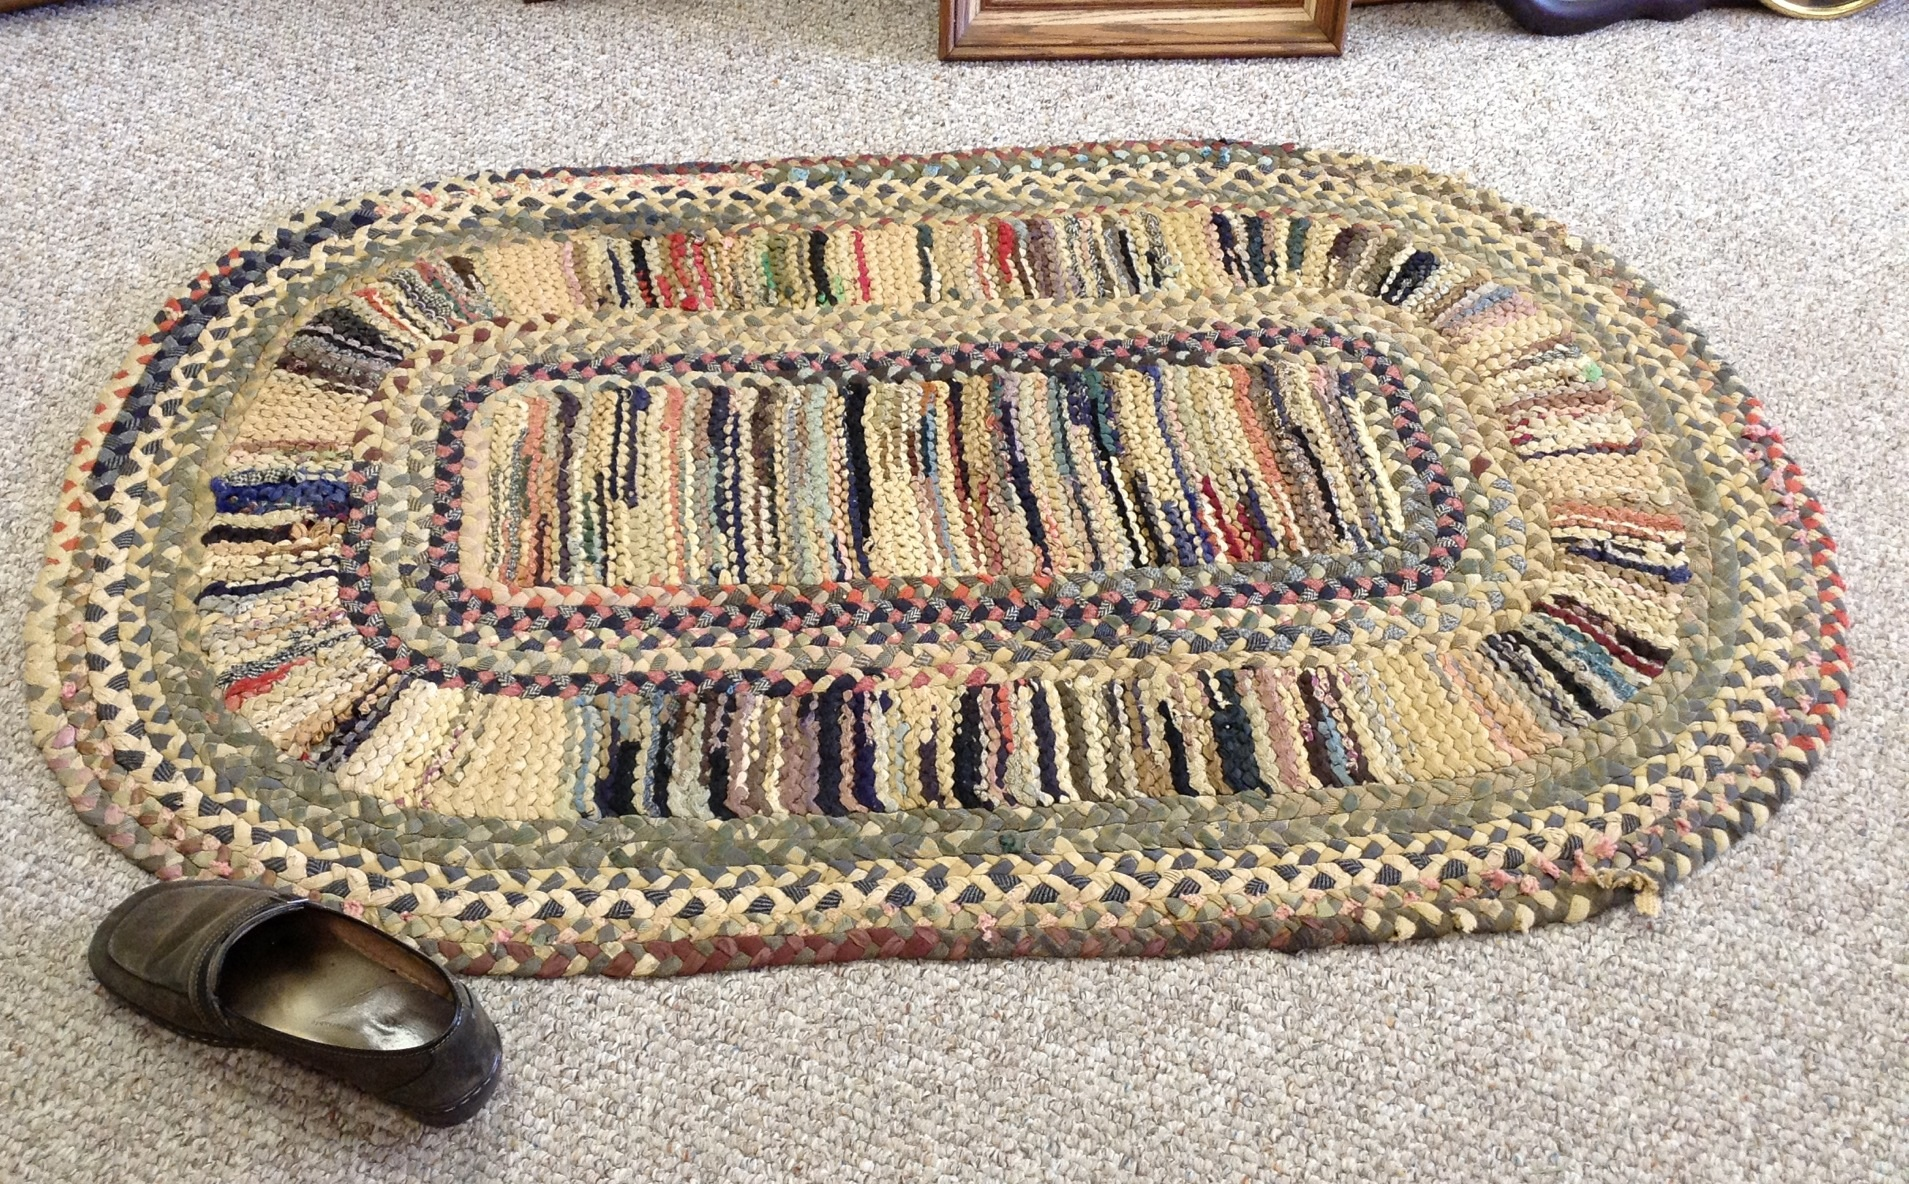 Antique Braided Rug Pattern The